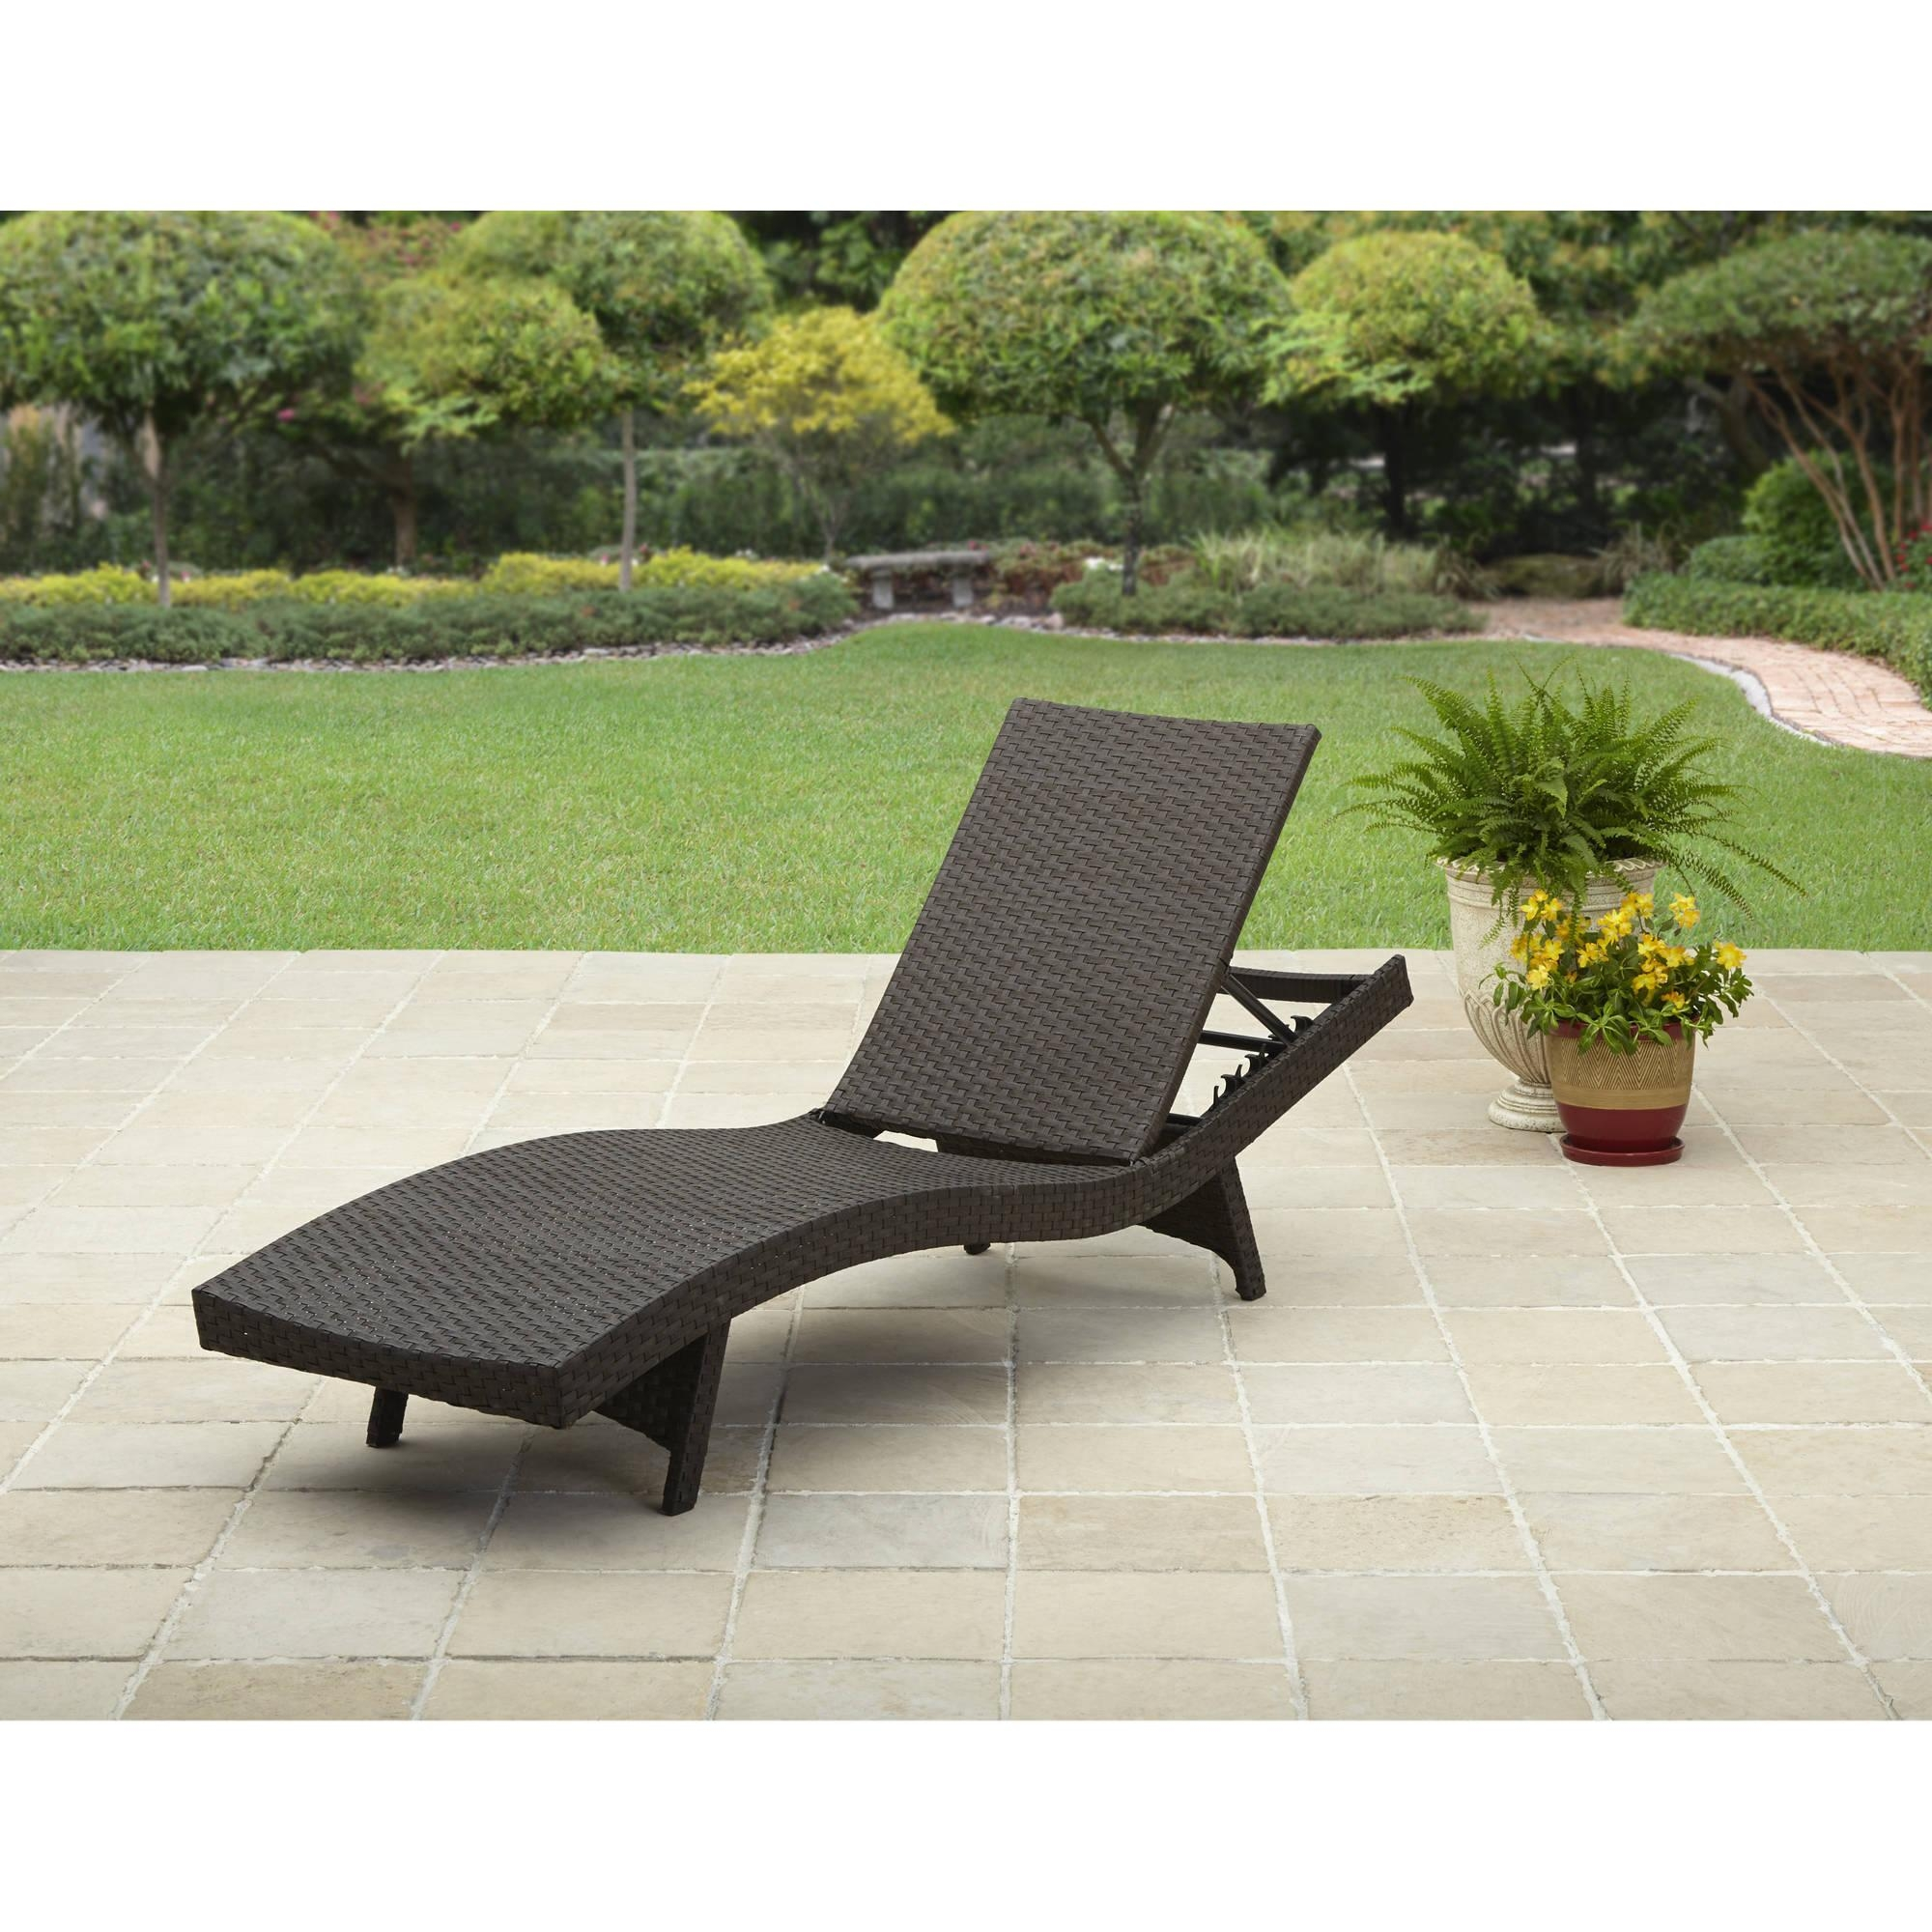 Patio Furniture – Walmart With Regard To Cheap Patio Sofas (Image 11 of 22)